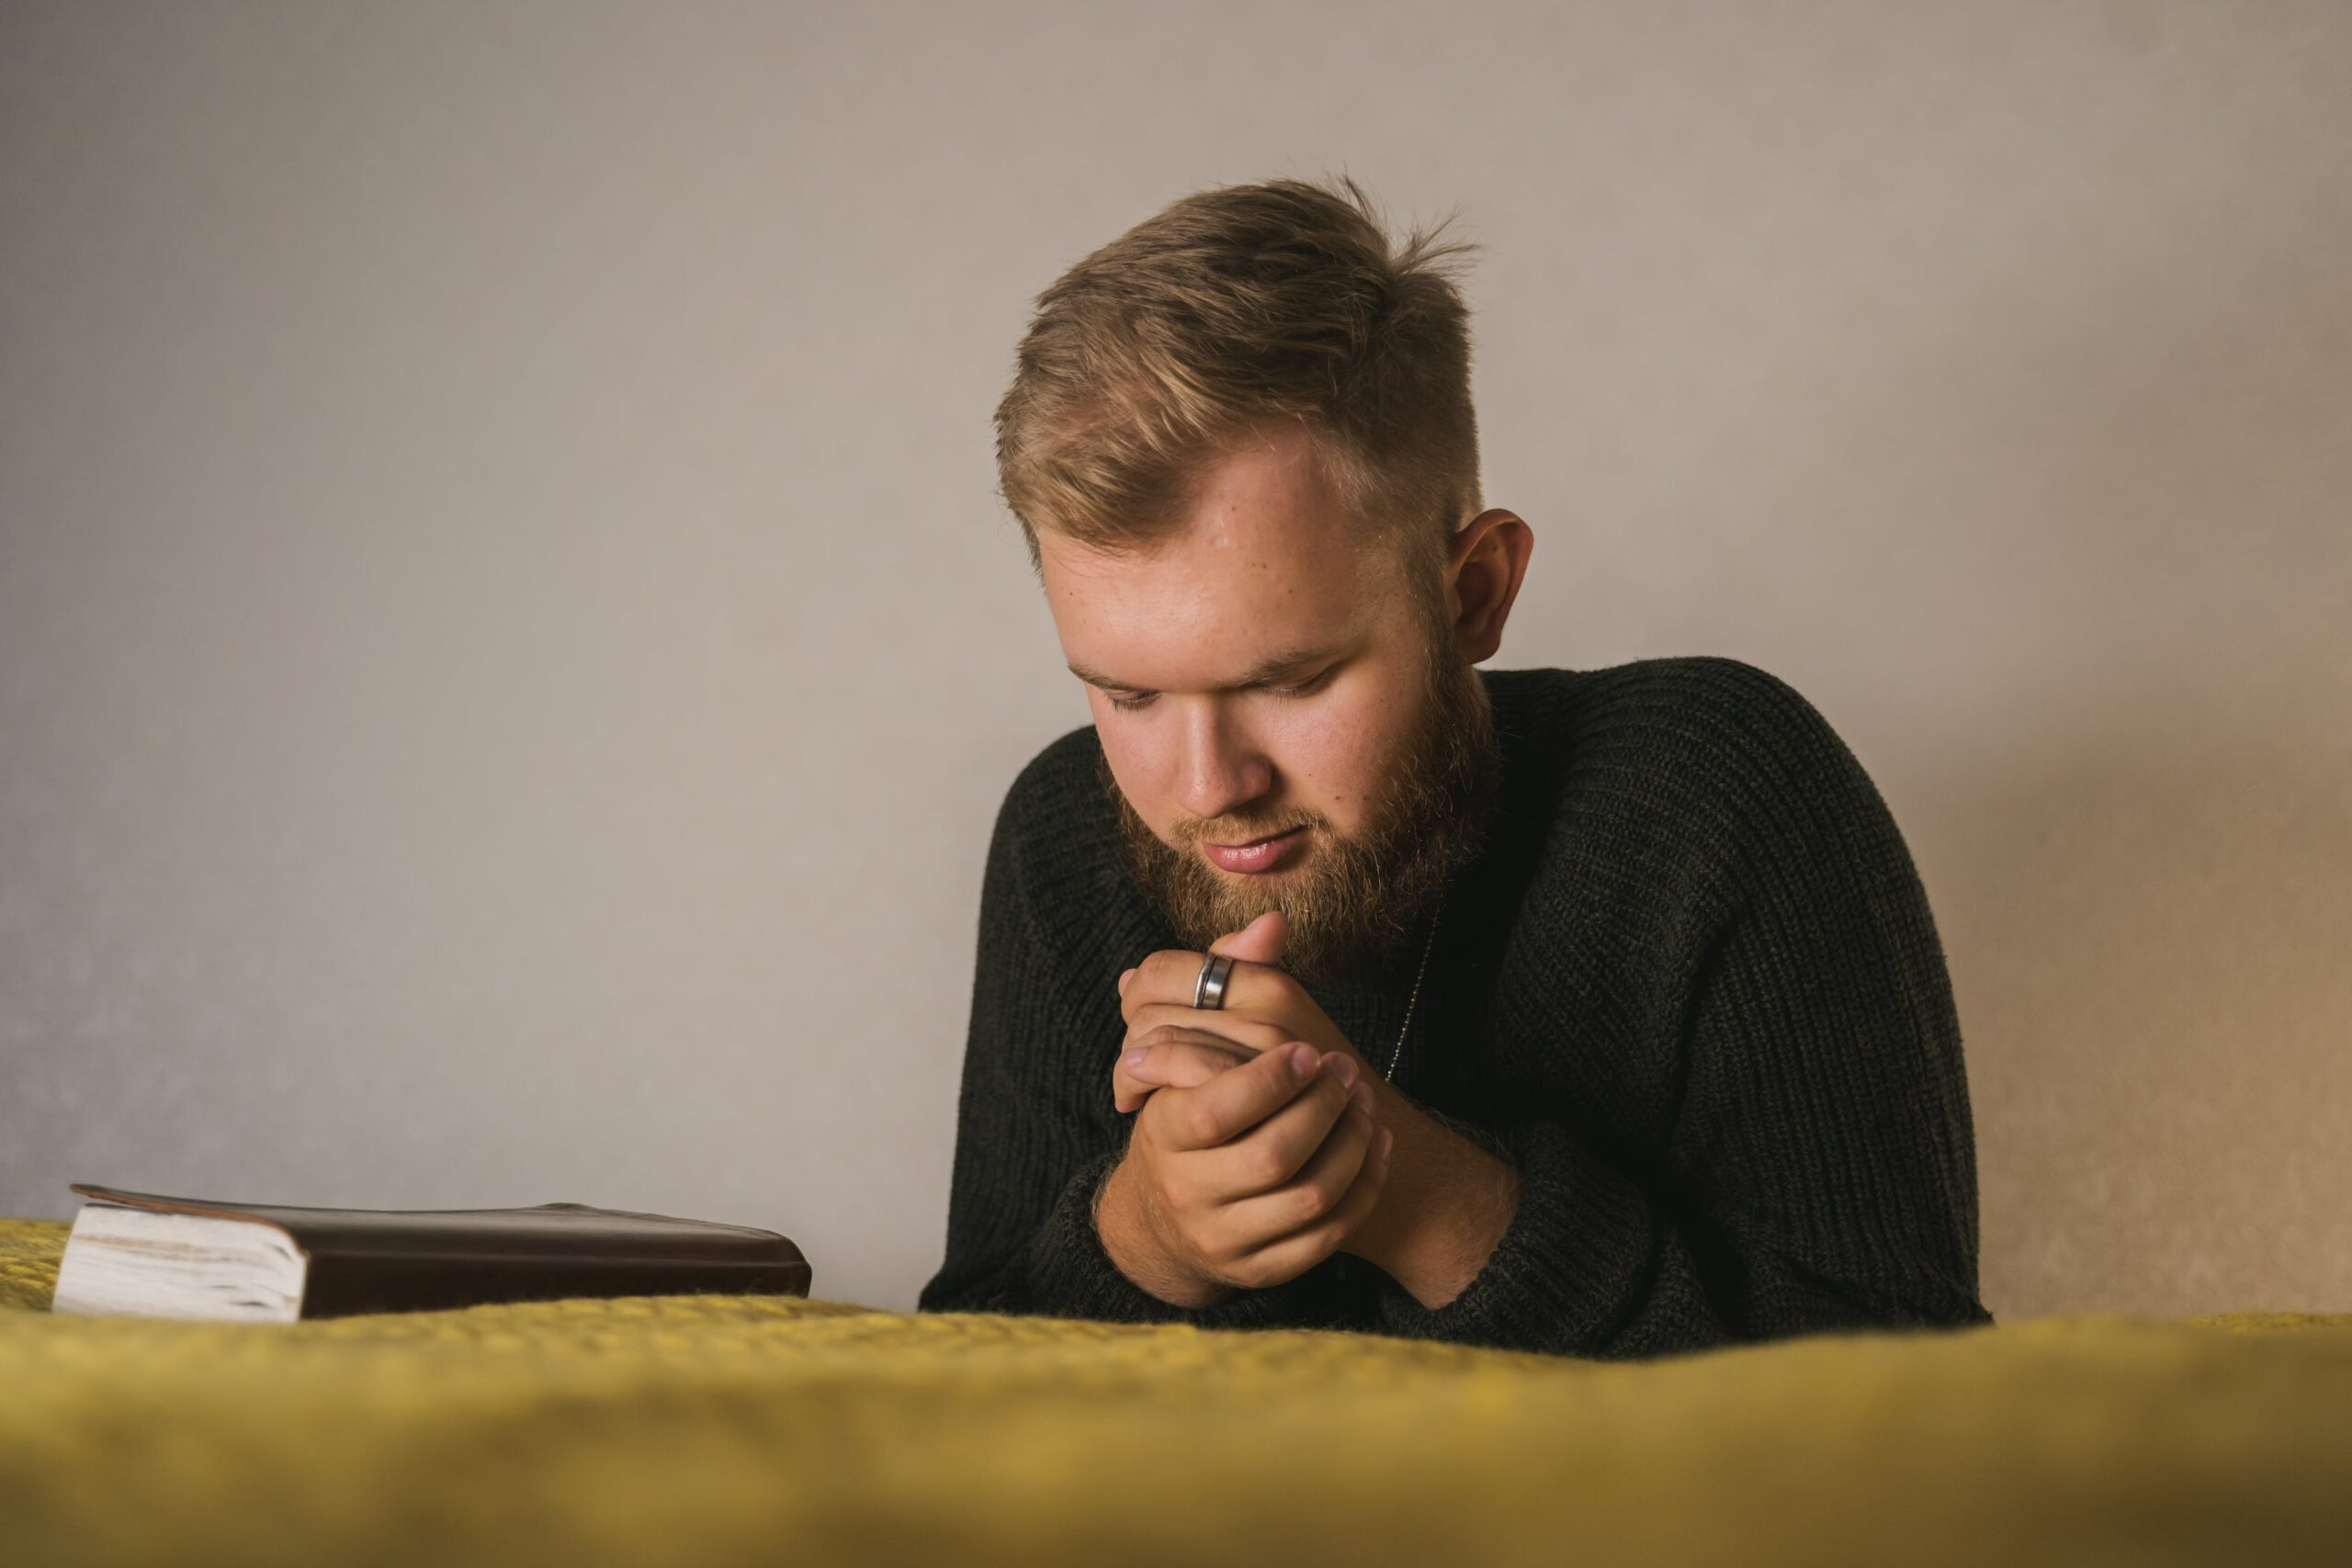 what does it mean to put your trust in God